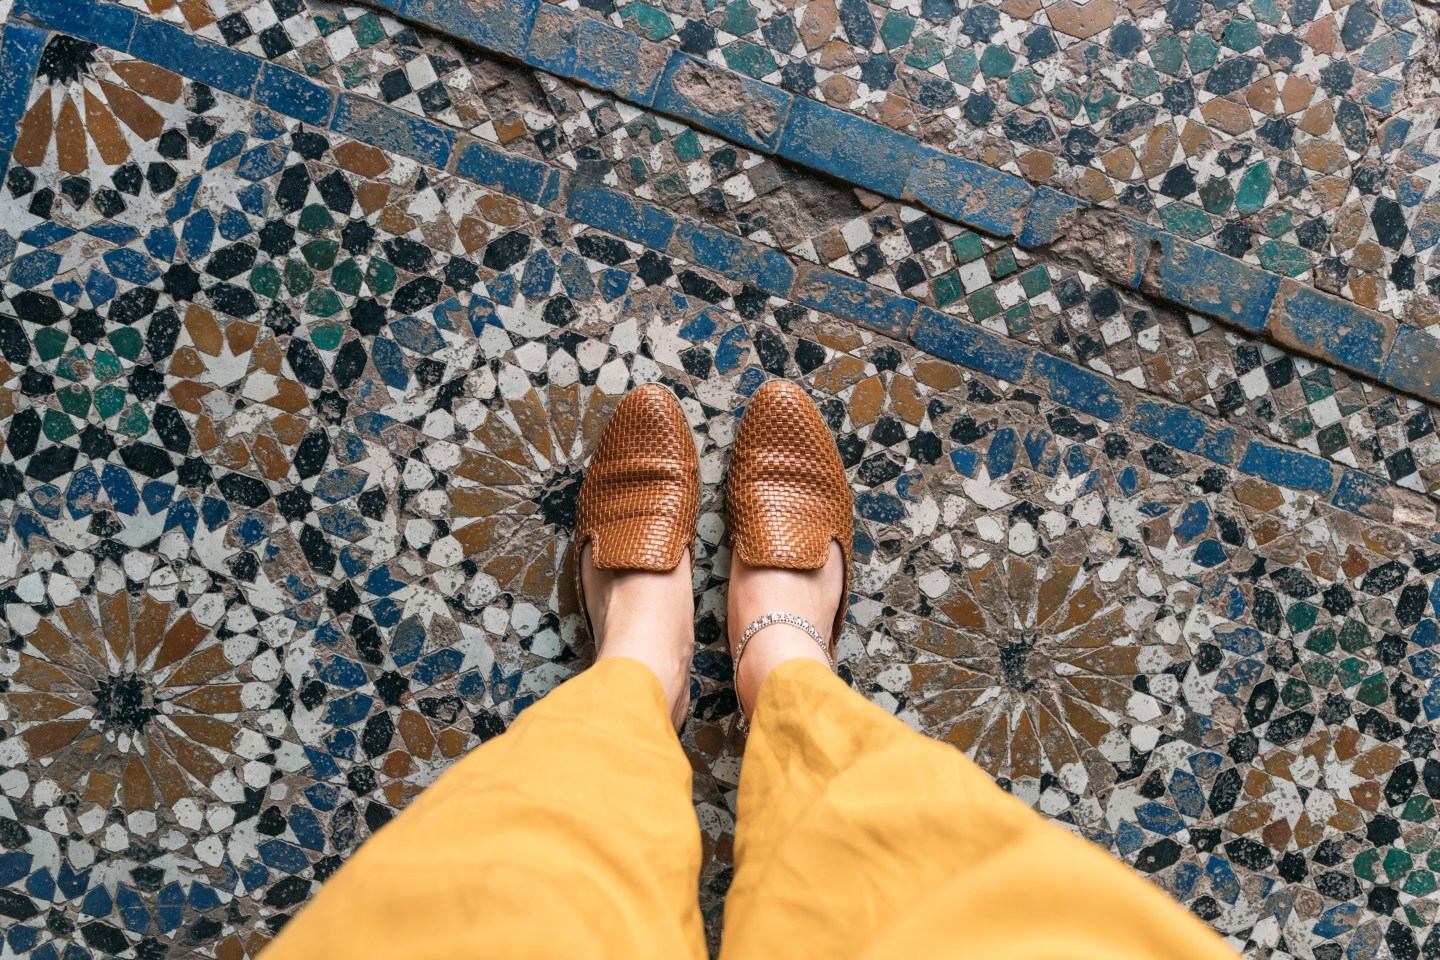 Tiled floor details of La Bahia Palace in Marrakech